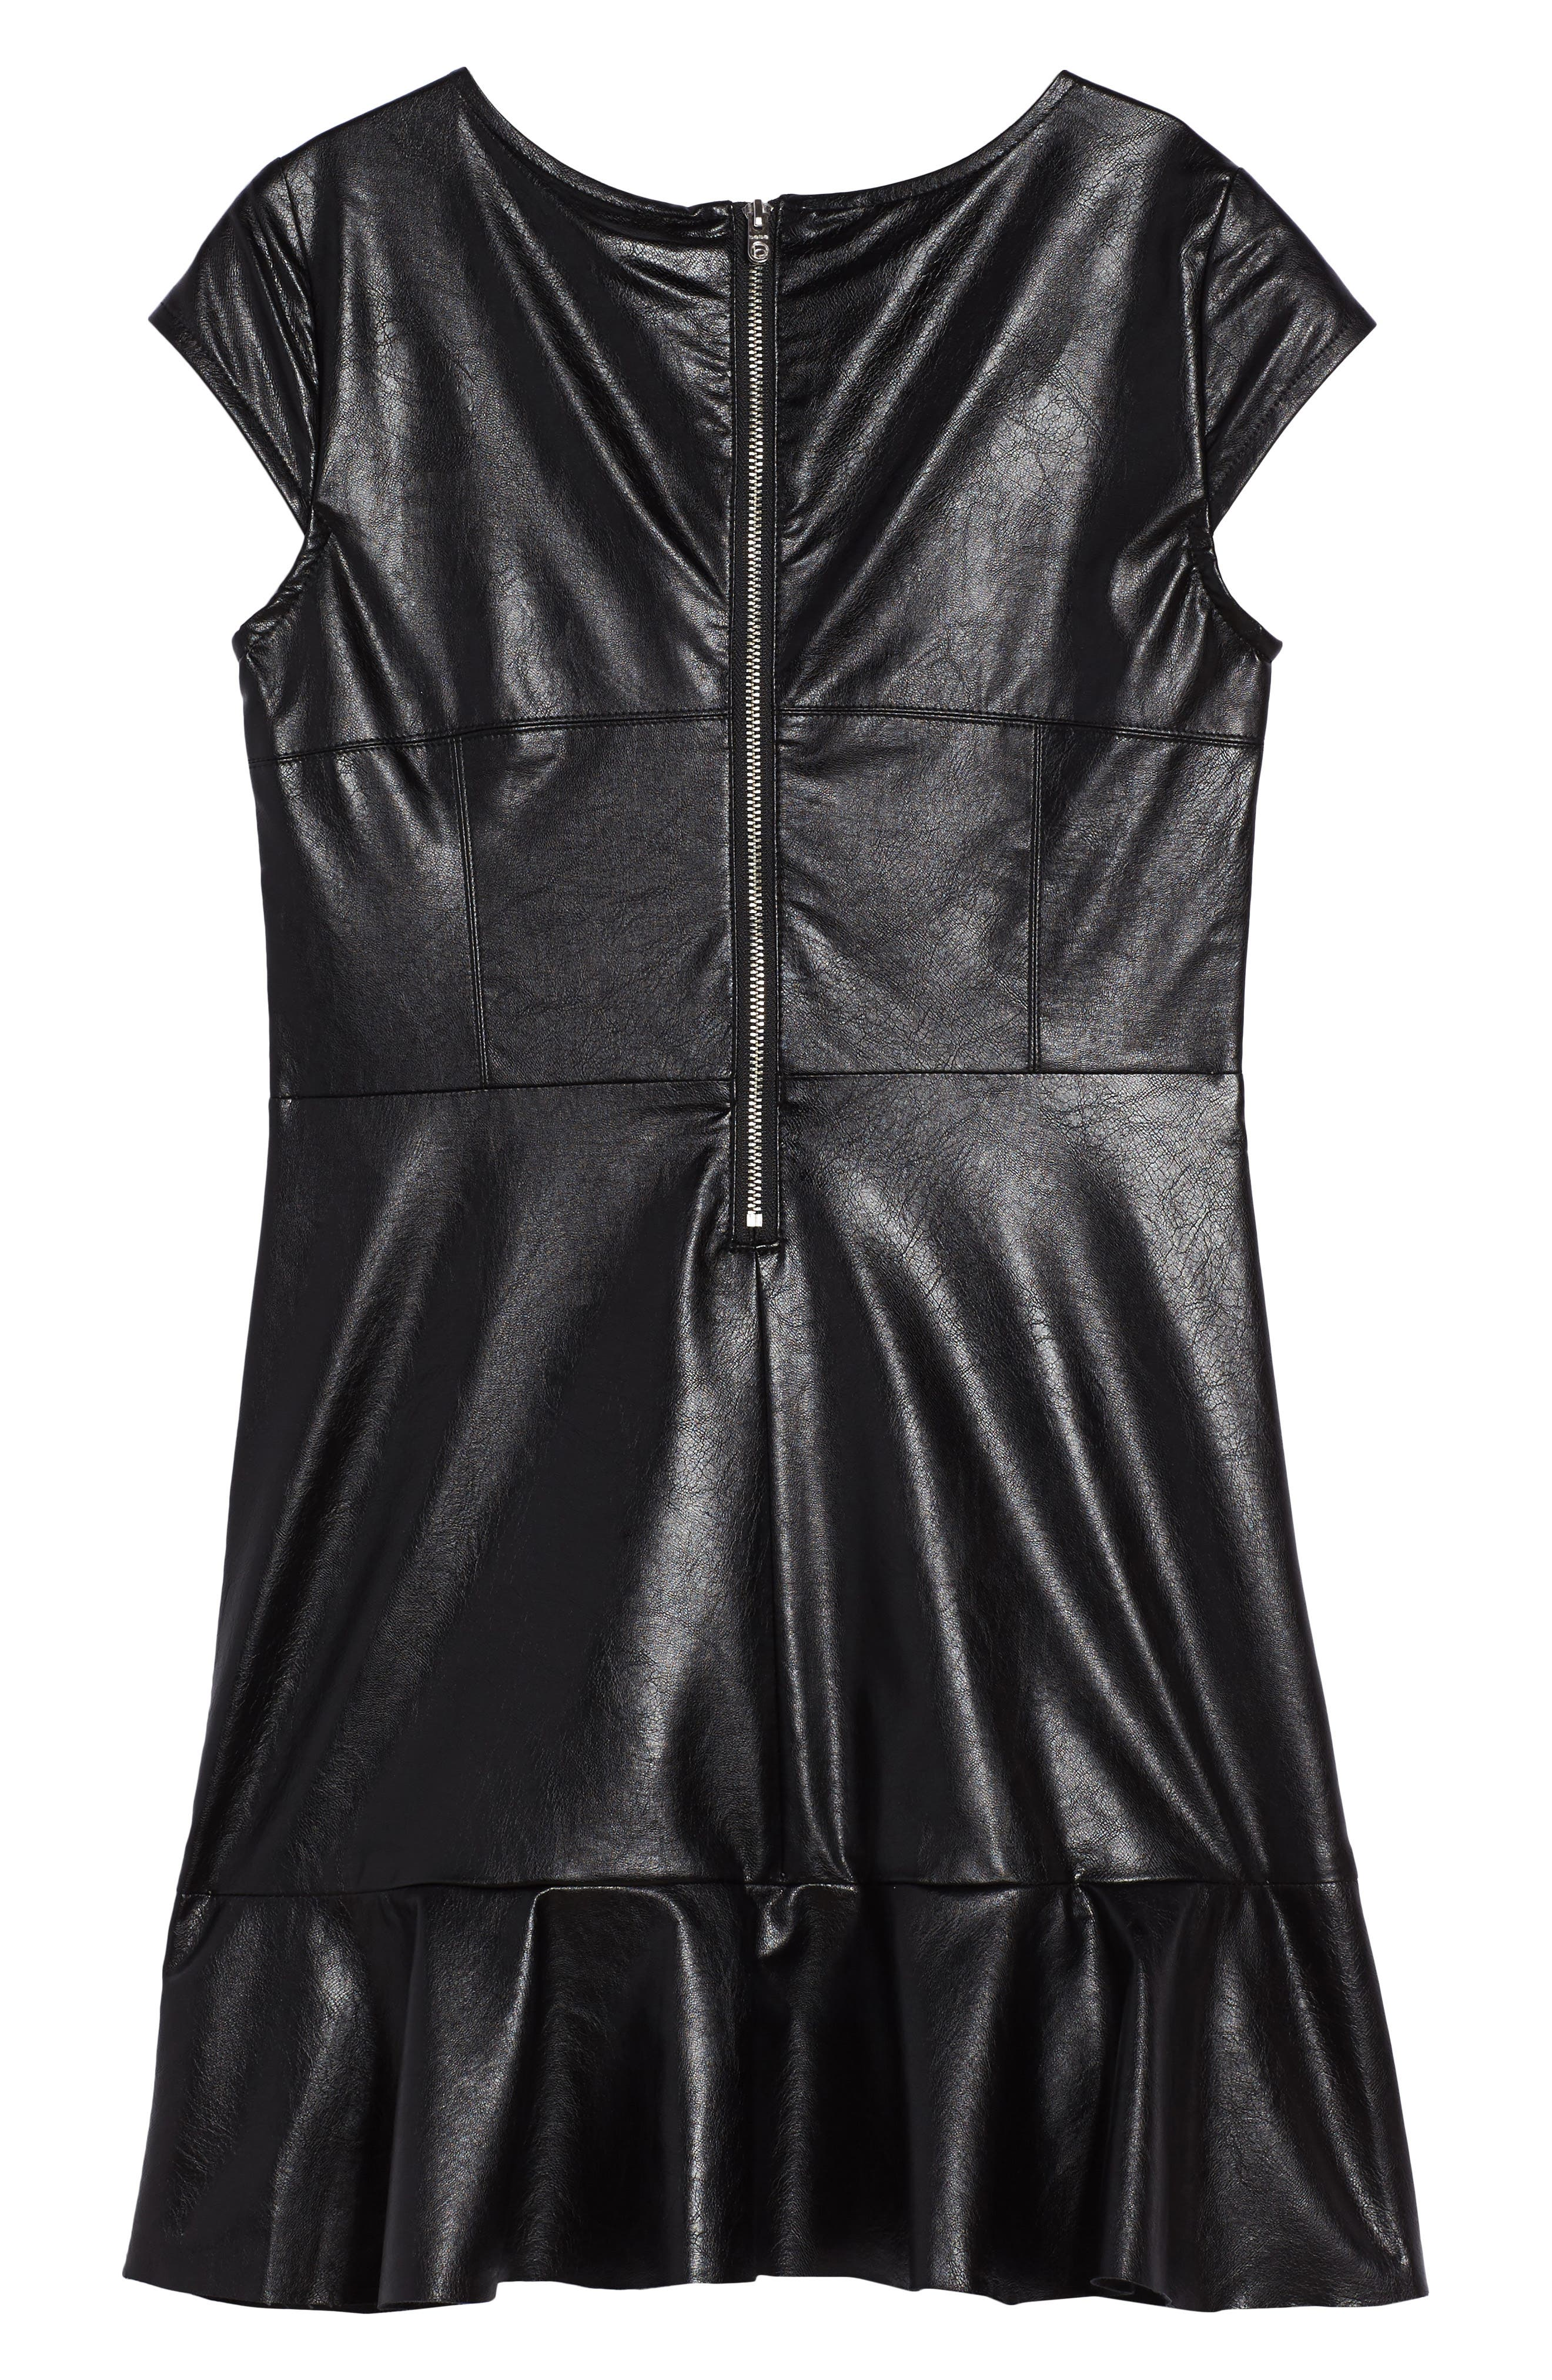 Embroidered Faux Leather Dress,                             Alternate thumbnail 2, color,                             Black